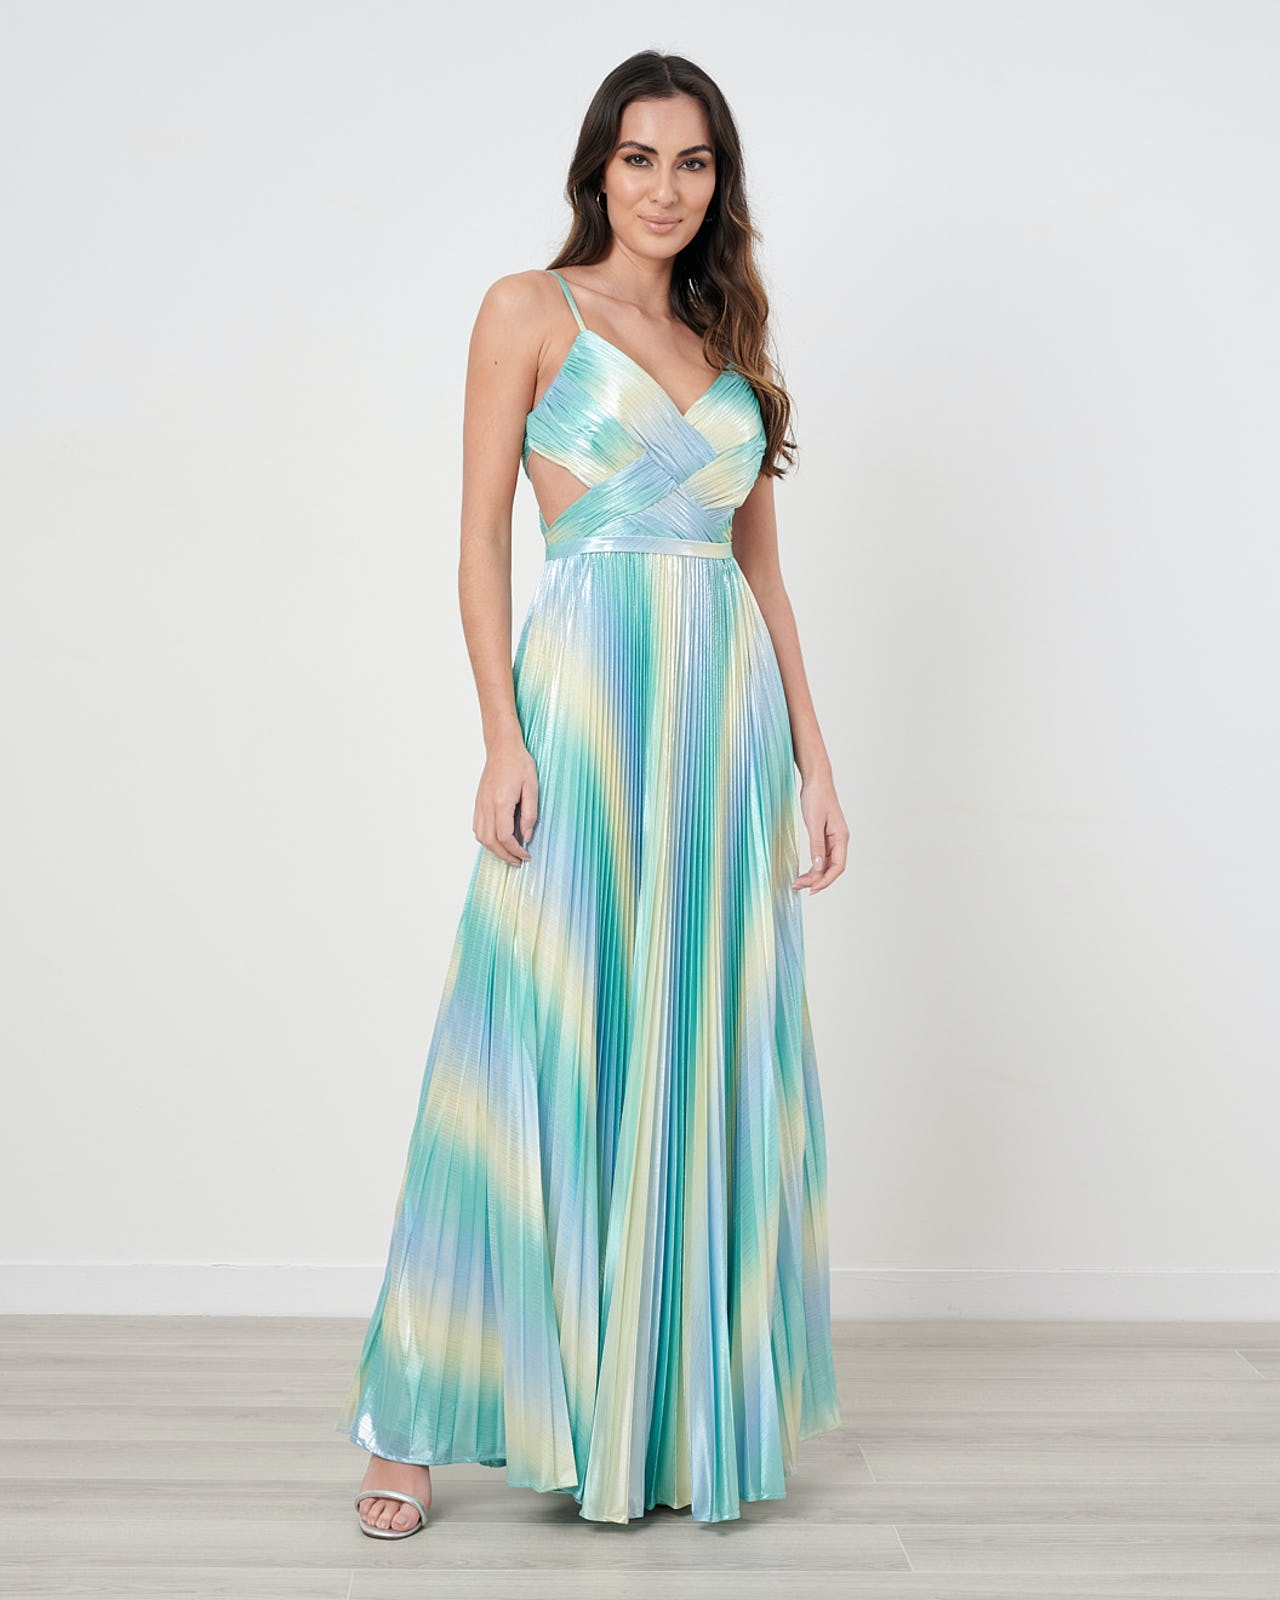 Metallic Turquoise And Lime Pleated Maxi Dress With Cut-Out Detail